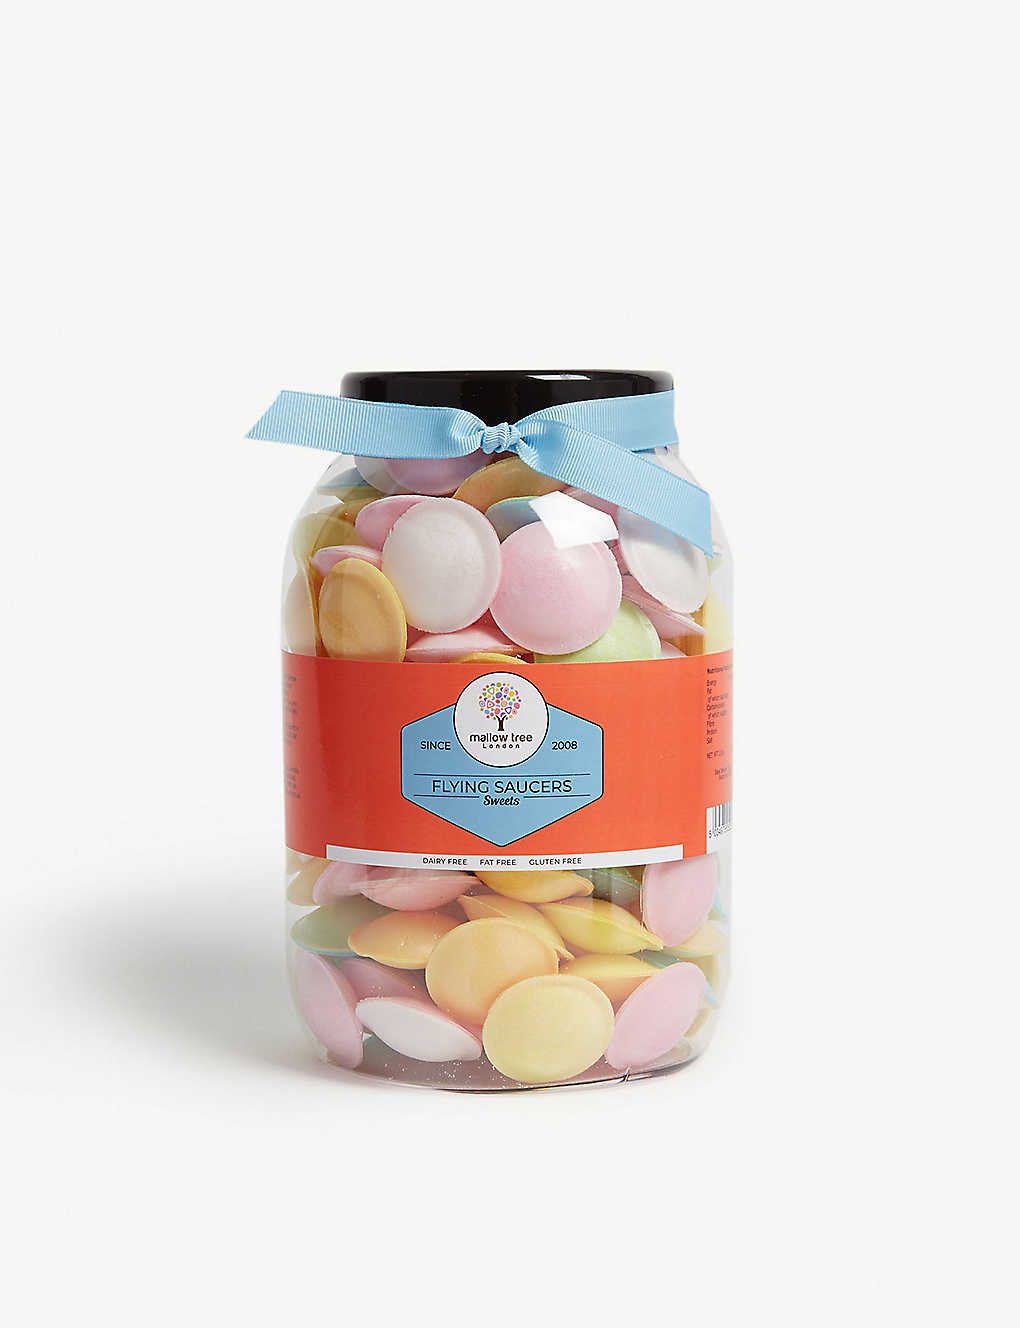 7b33a52dde8 Flying saucer sweets 220g